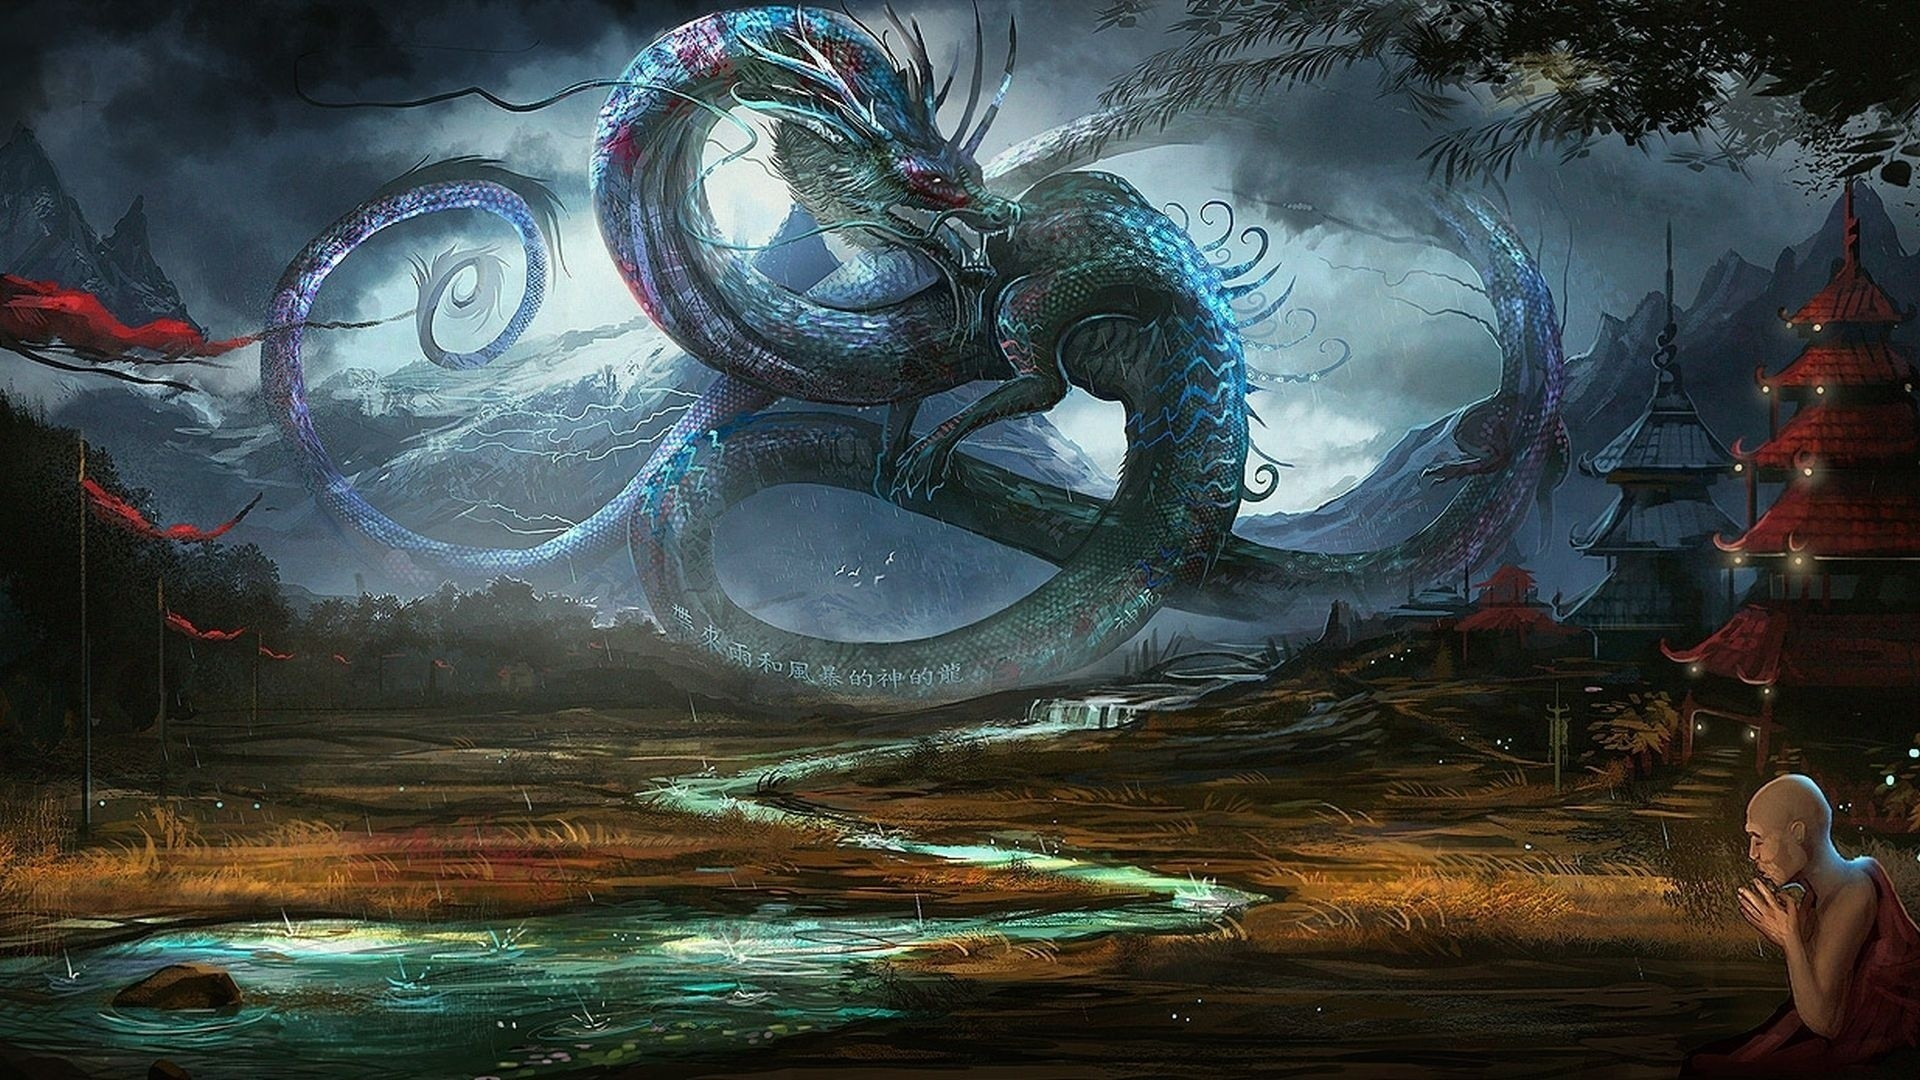 1920x1080 Hd Wallpaper  Dragon Fantasy dragons images hd